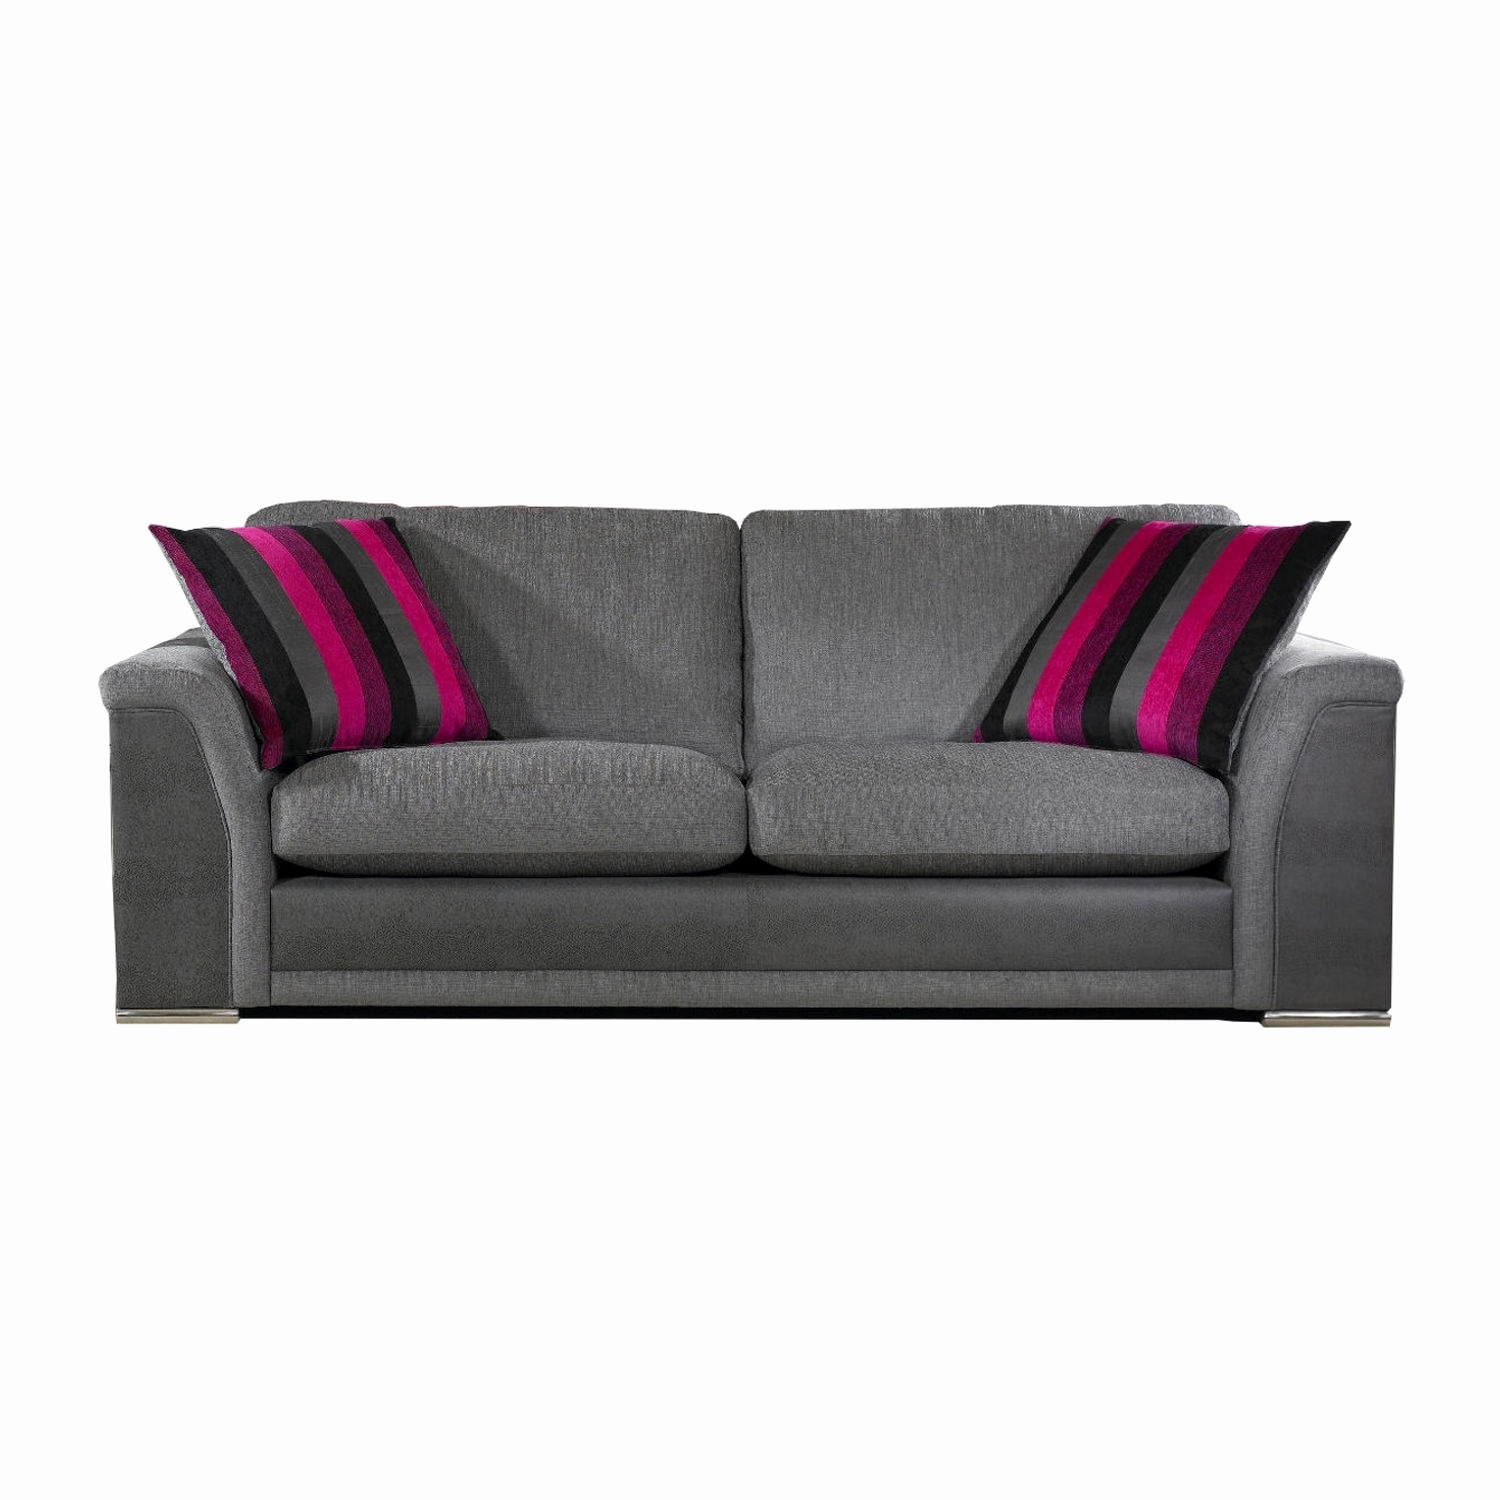 Fresh High Point Sofa 2018 – Couches And Sofas Ideas Pertaining To High Point Nc Sectional Sofas (Image 4 of 10)